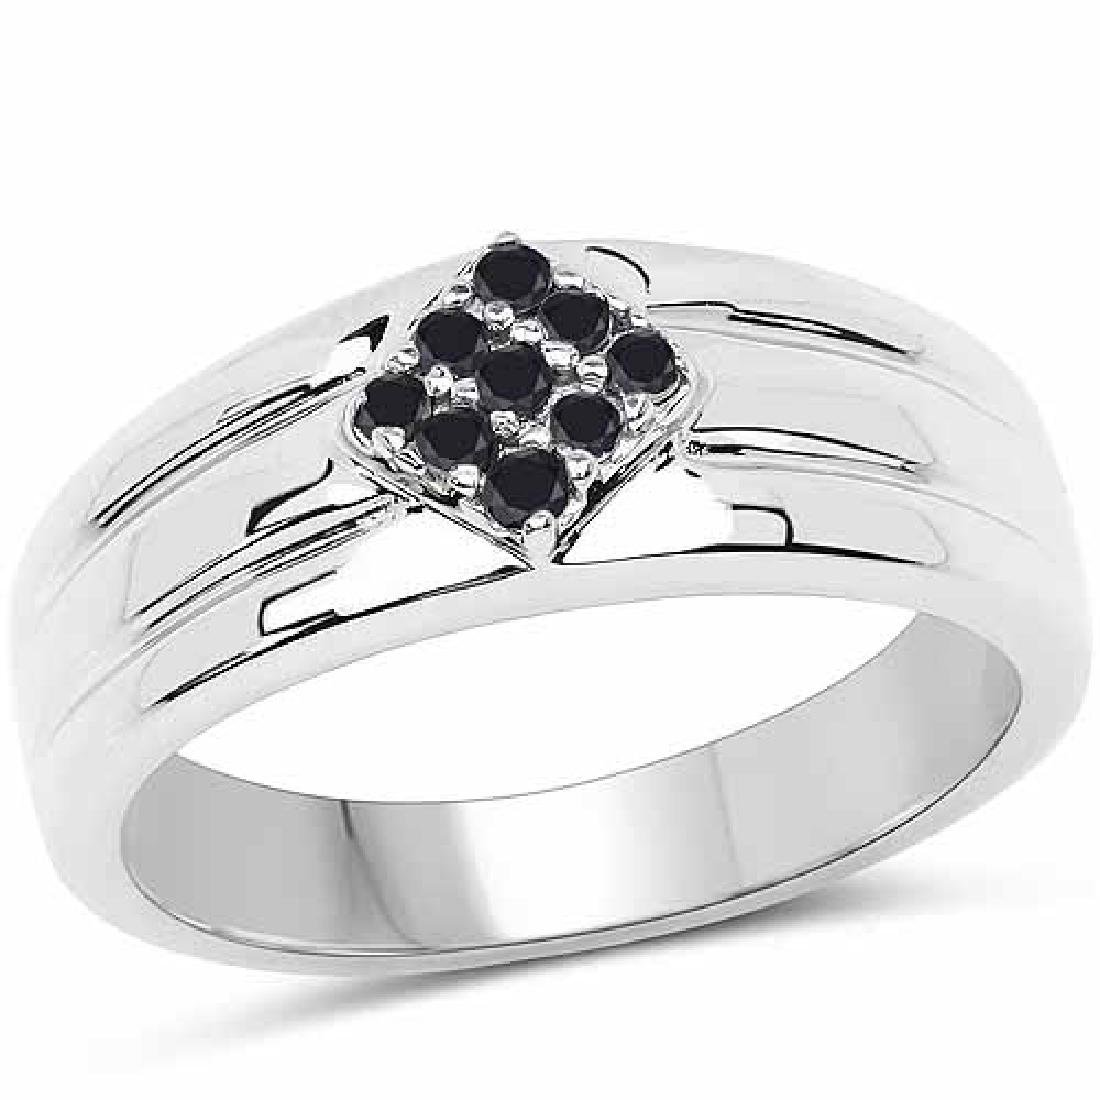 0.14 Carat Genuine Black Diamond .925 Sterling Silver R